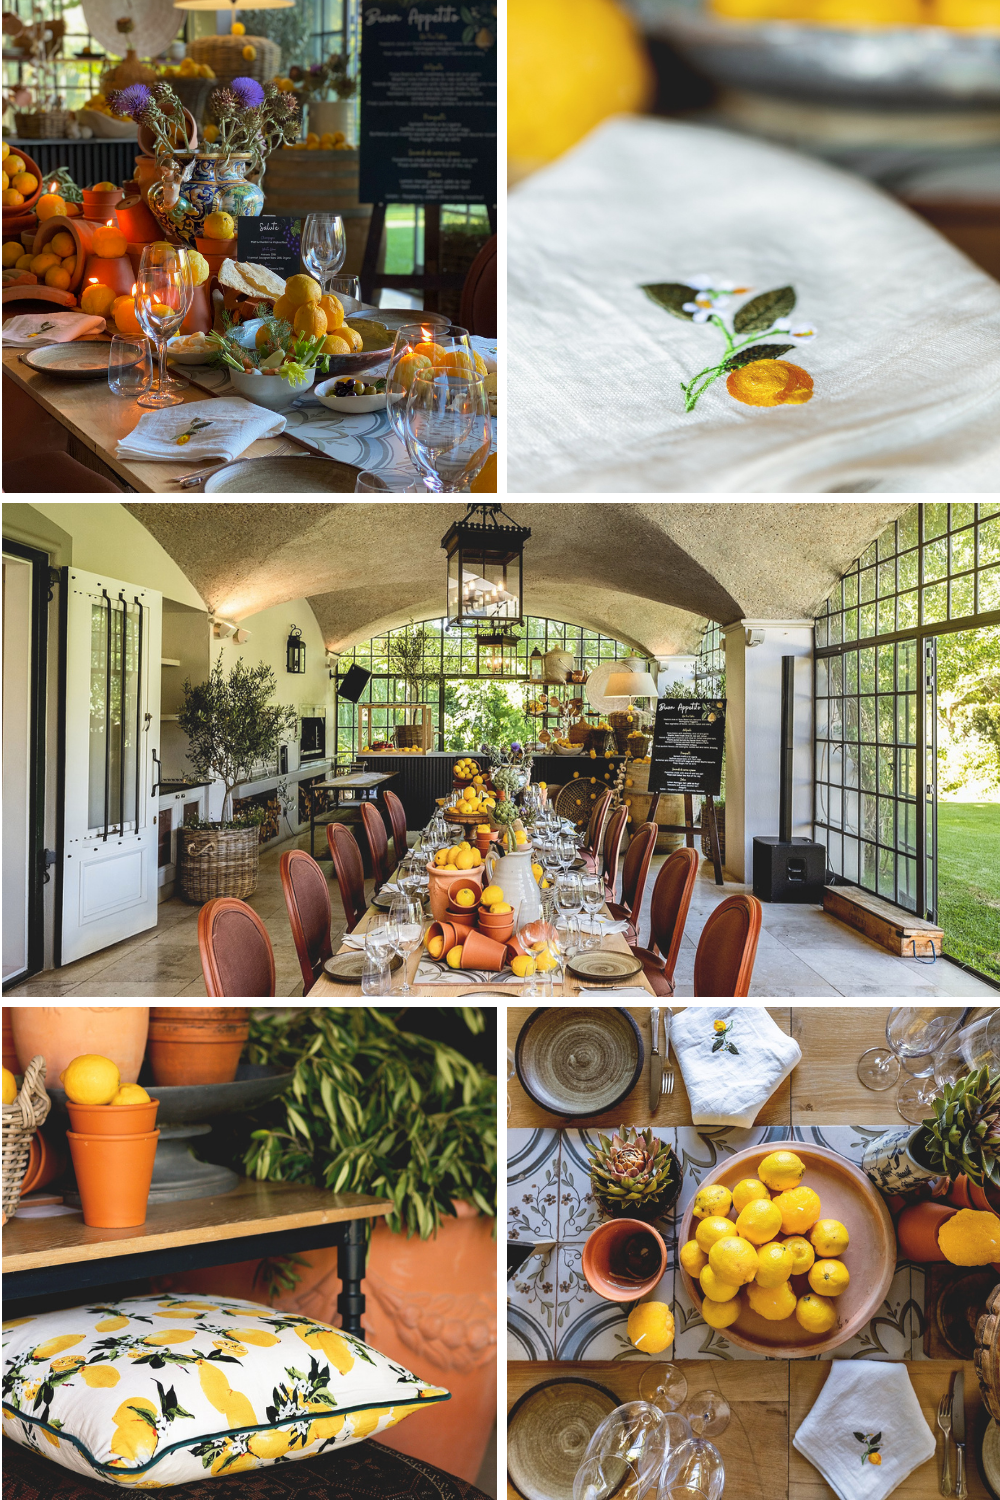 Dining table set in Tuscan theme with lemons and artichokes